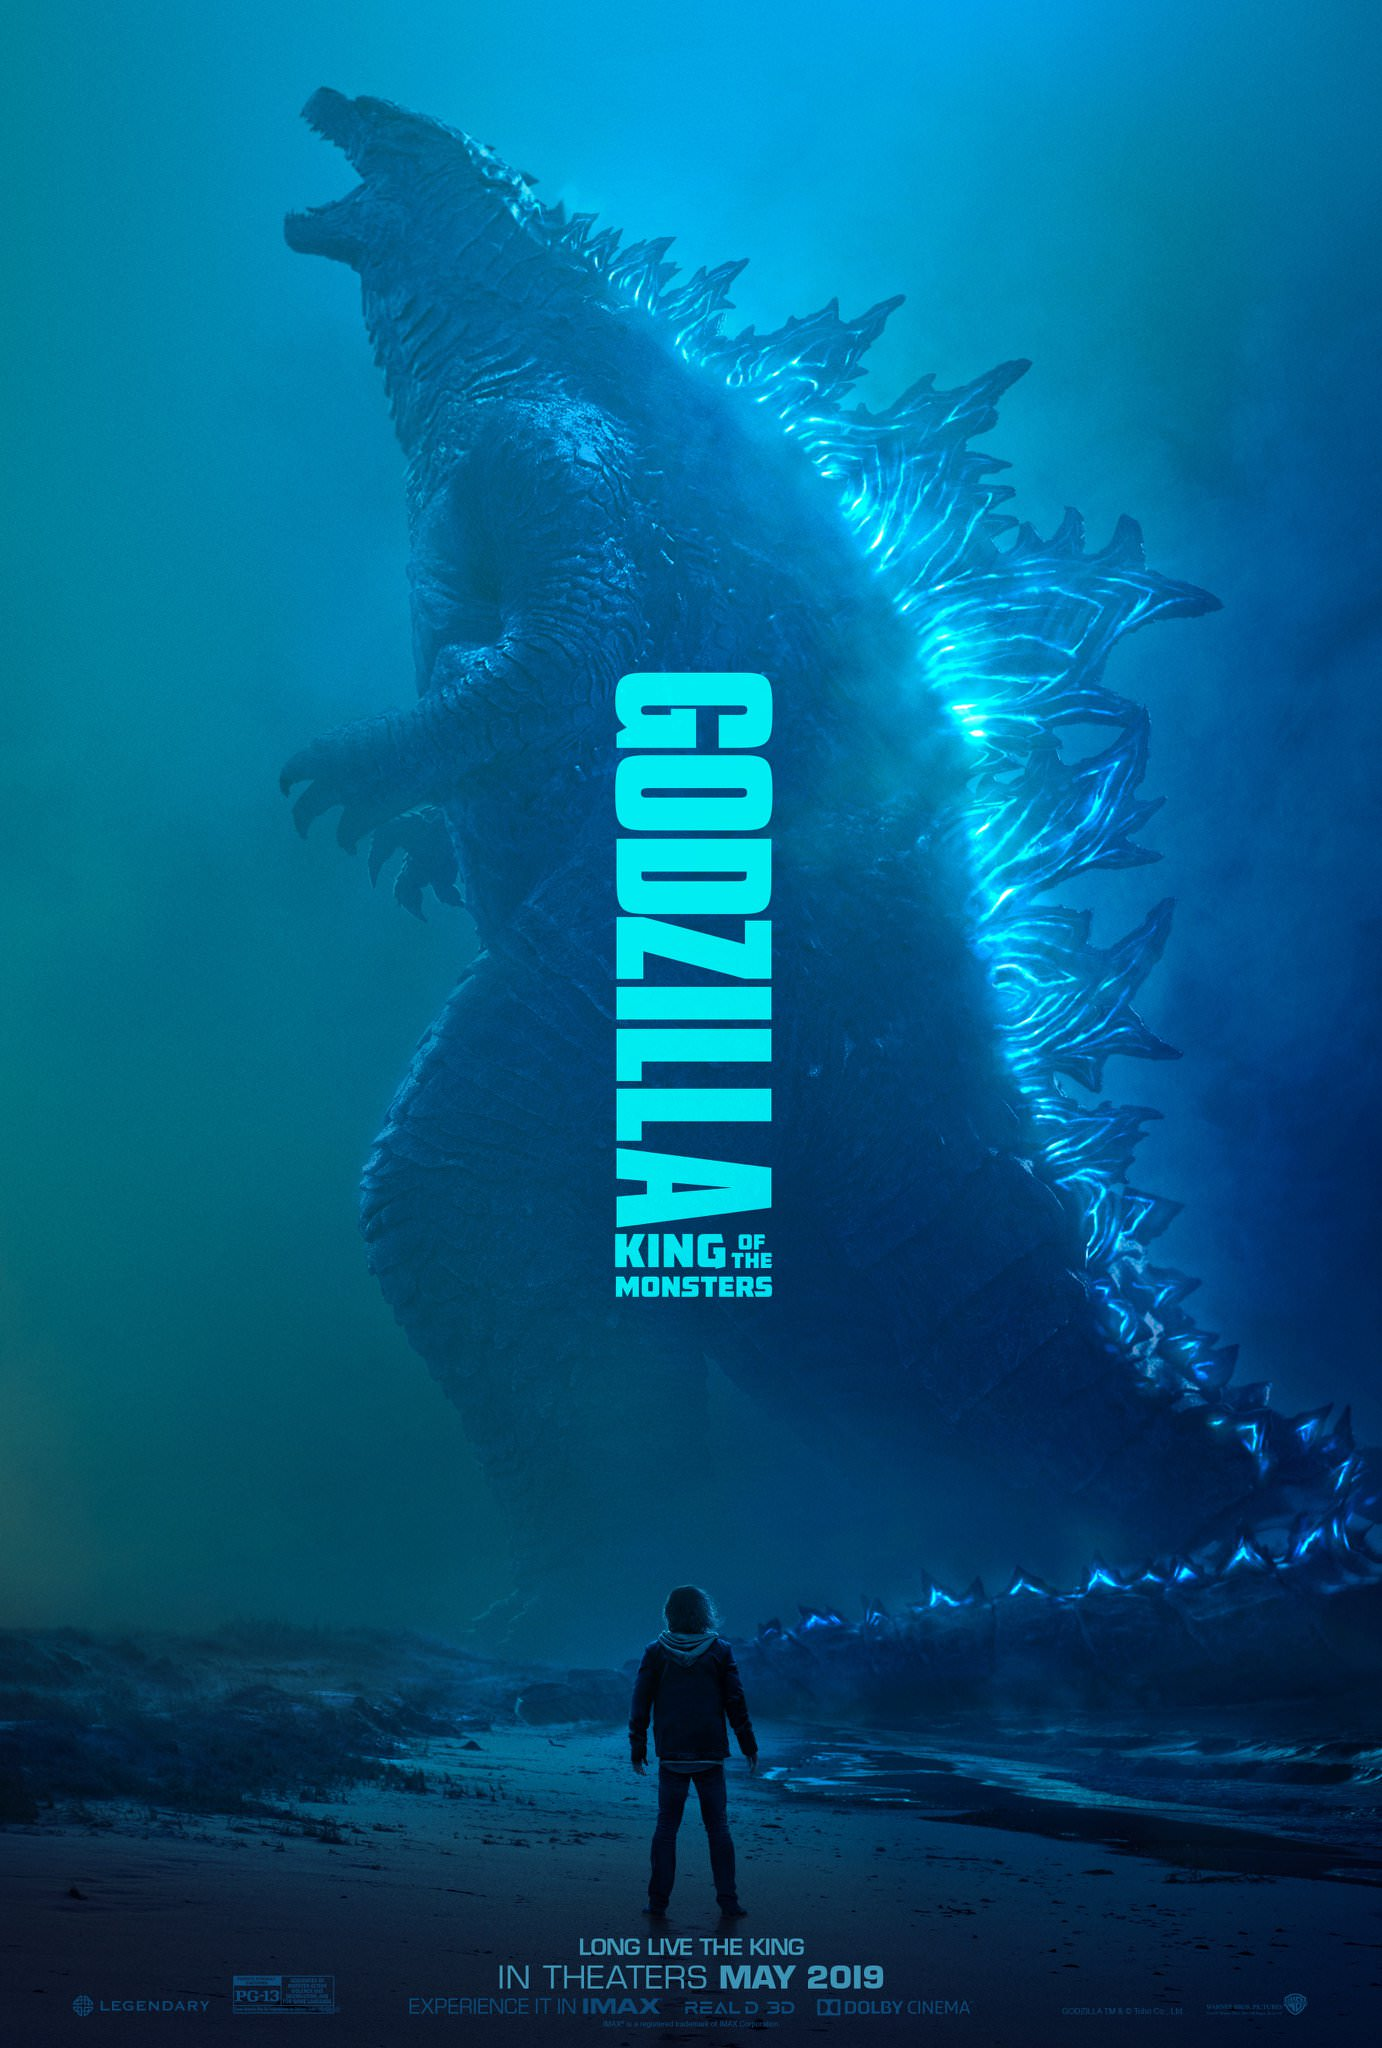 giant-monstrous-titans-go-to-war-in-epic-new-trailer-for-godzilla-king-of-the-monsters1